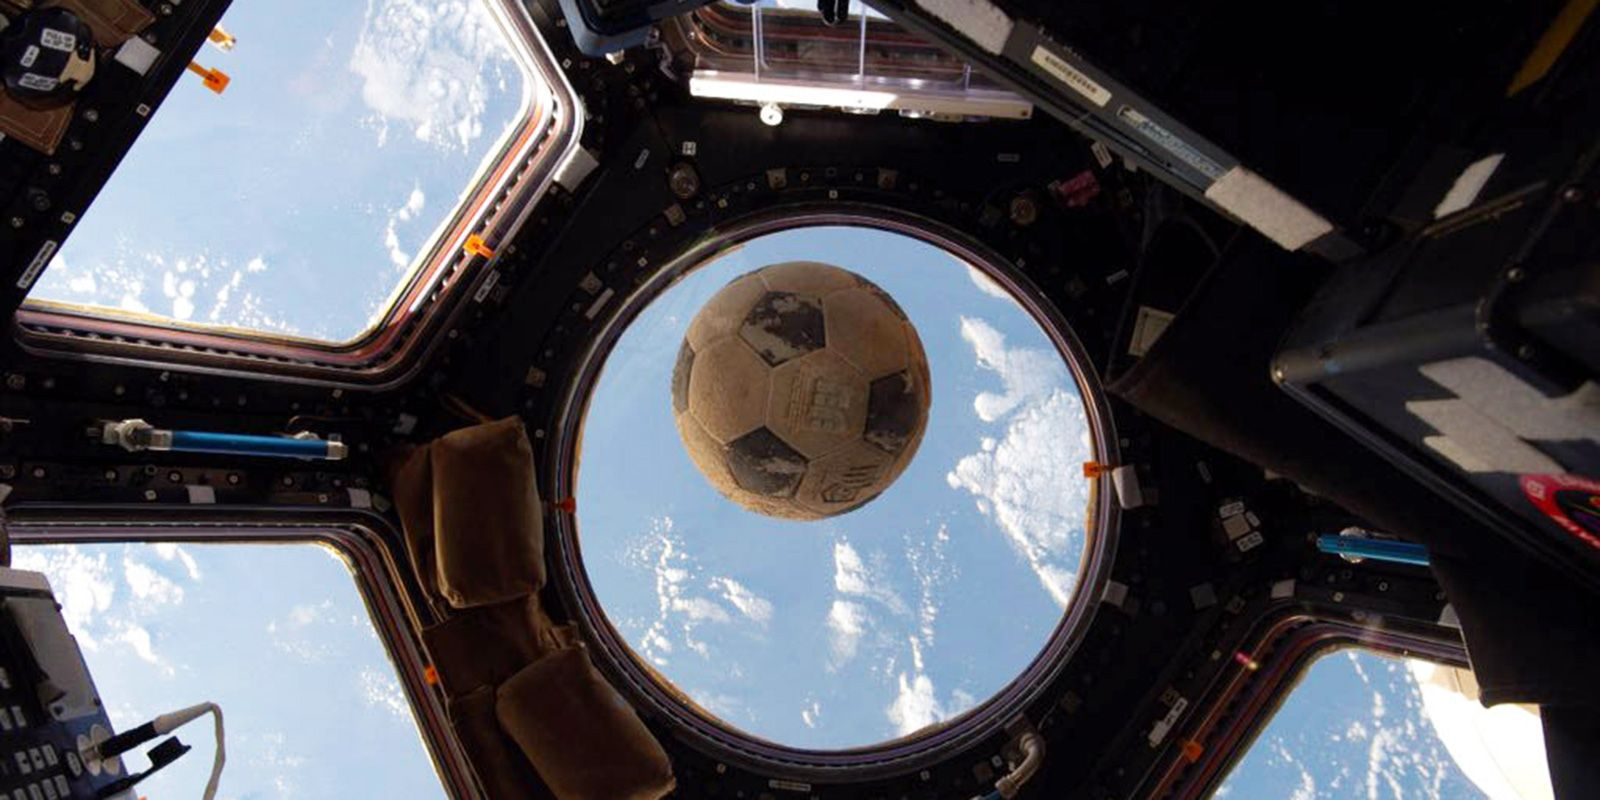 Ellison Onizuka's soccer ball, retrieved after the Challenger disaster, flies aboard the International Space Station during Expedition 49.